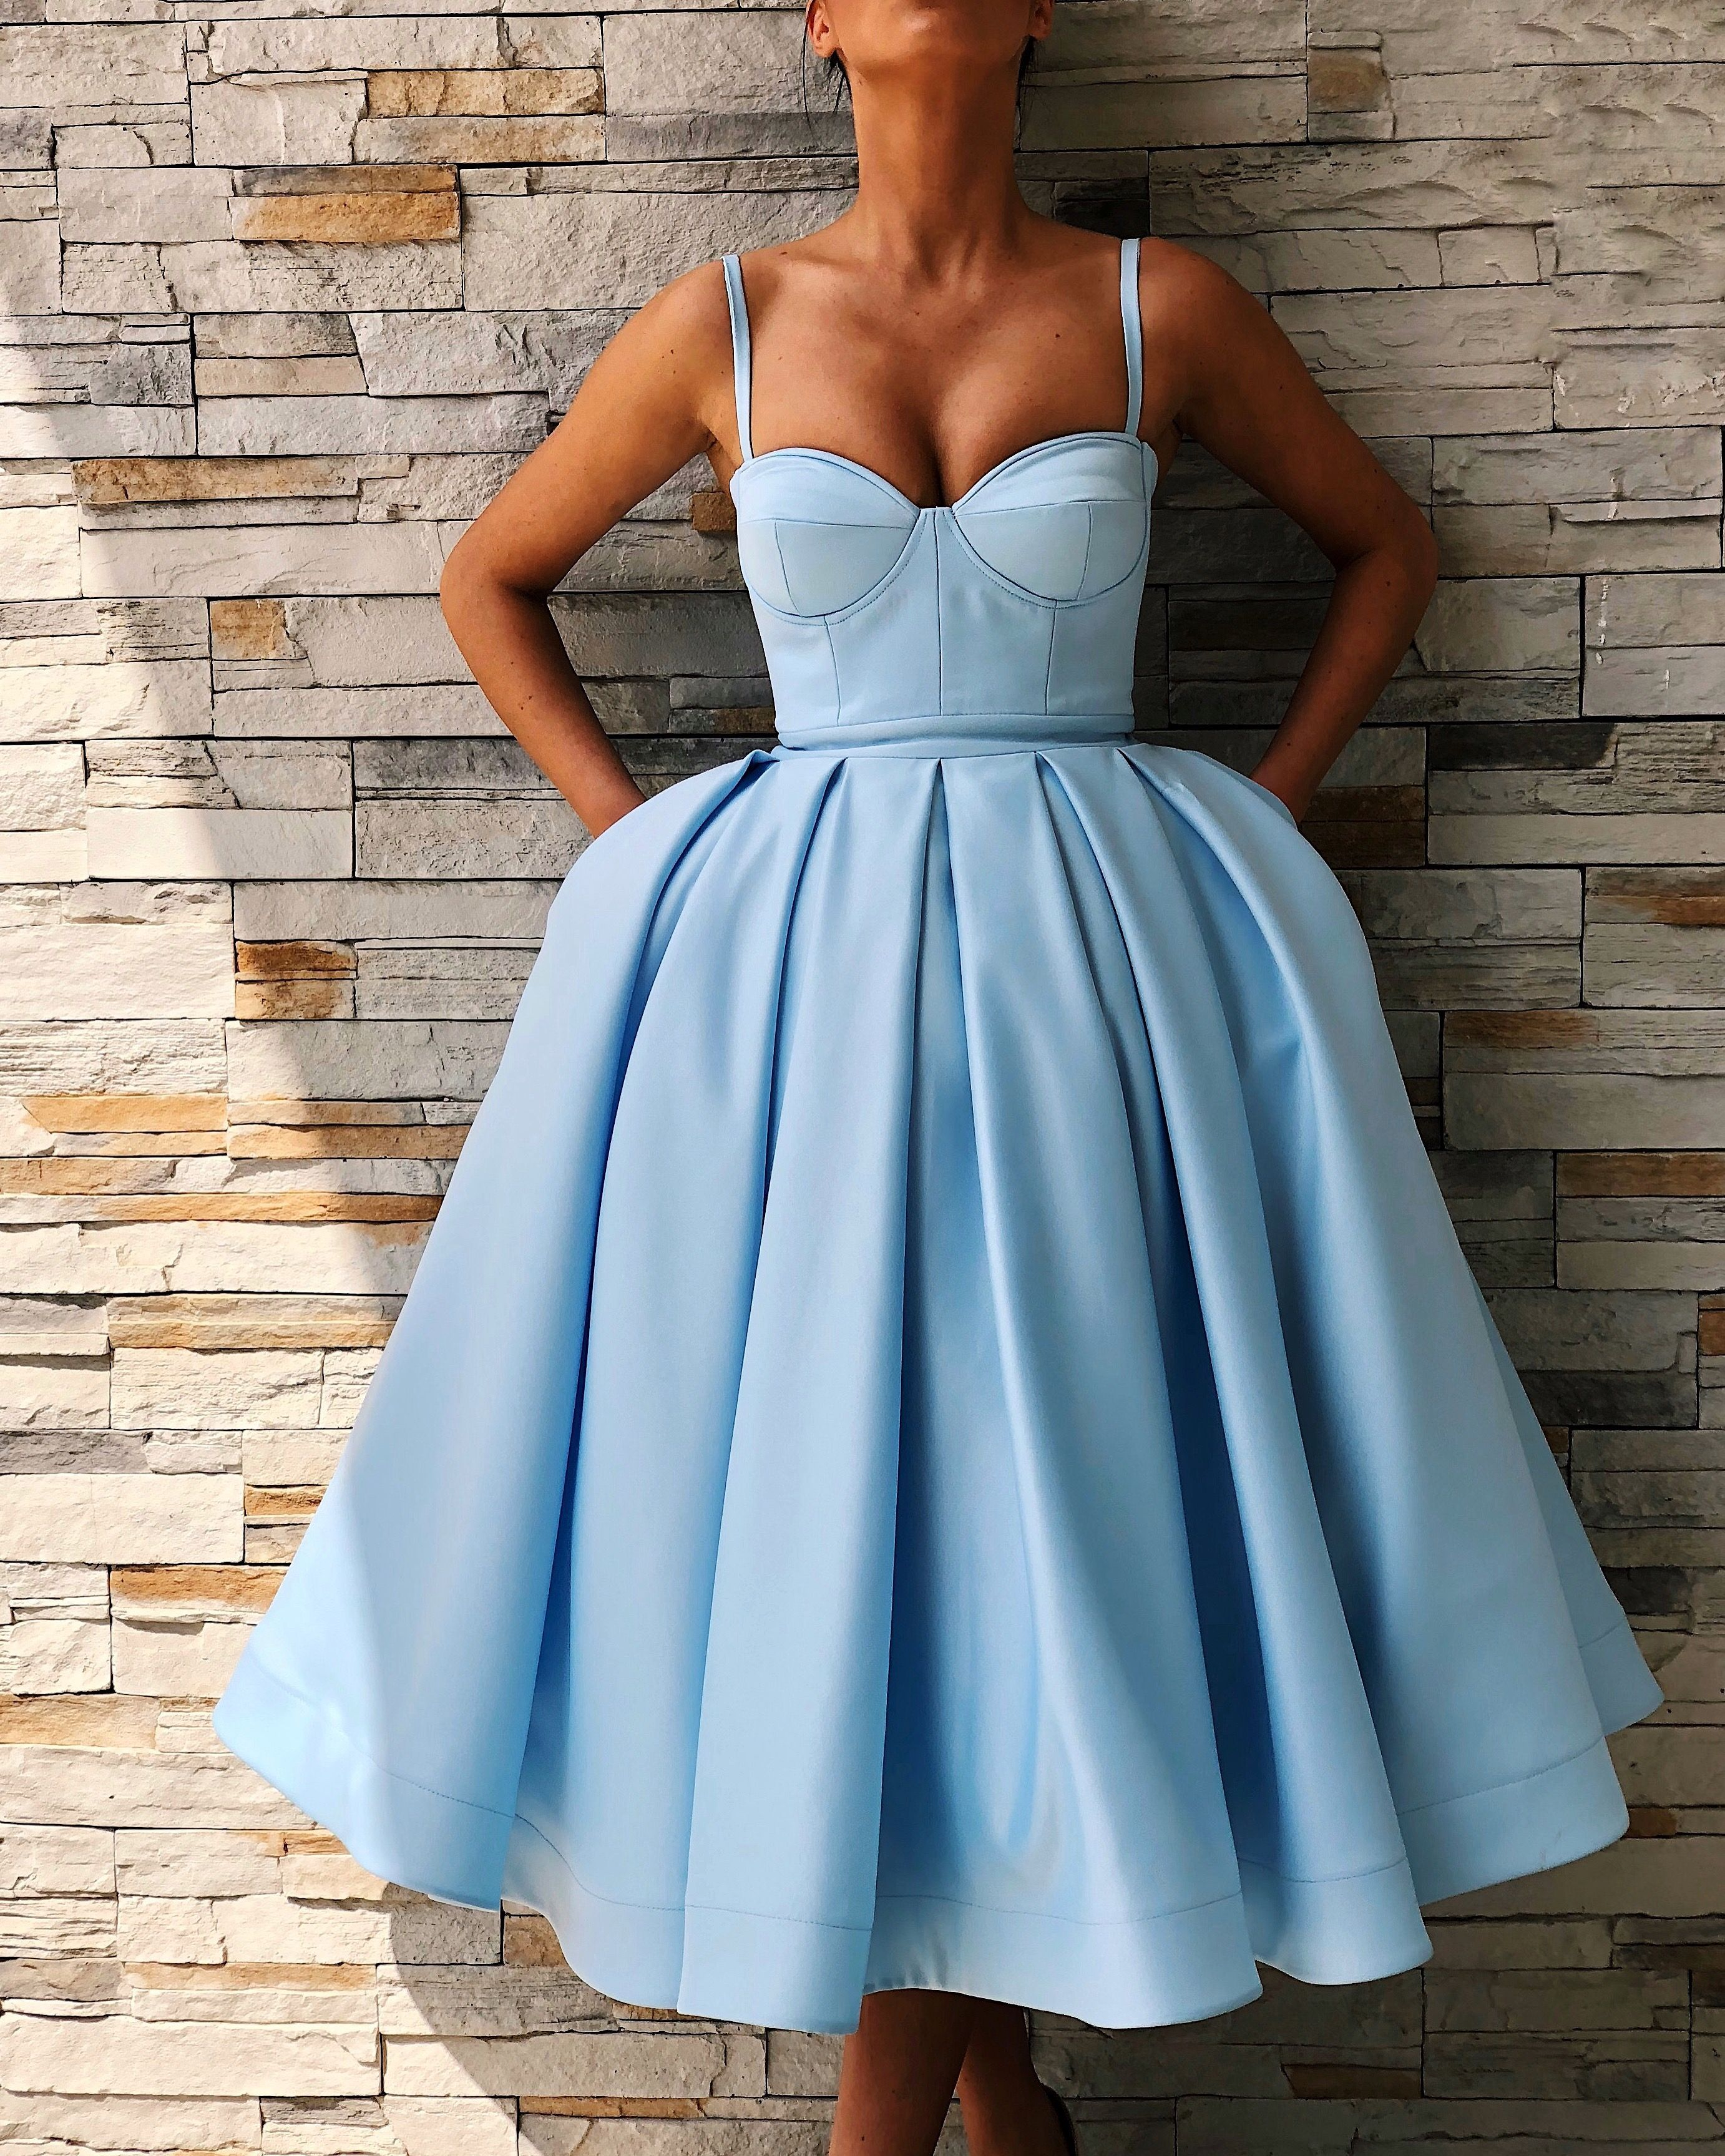 e383176468 Cute Sweetheart Satin Short Prom Dress Tea Length Ball Gown Party Dresses  with Spaghetti Straps on Storenvy